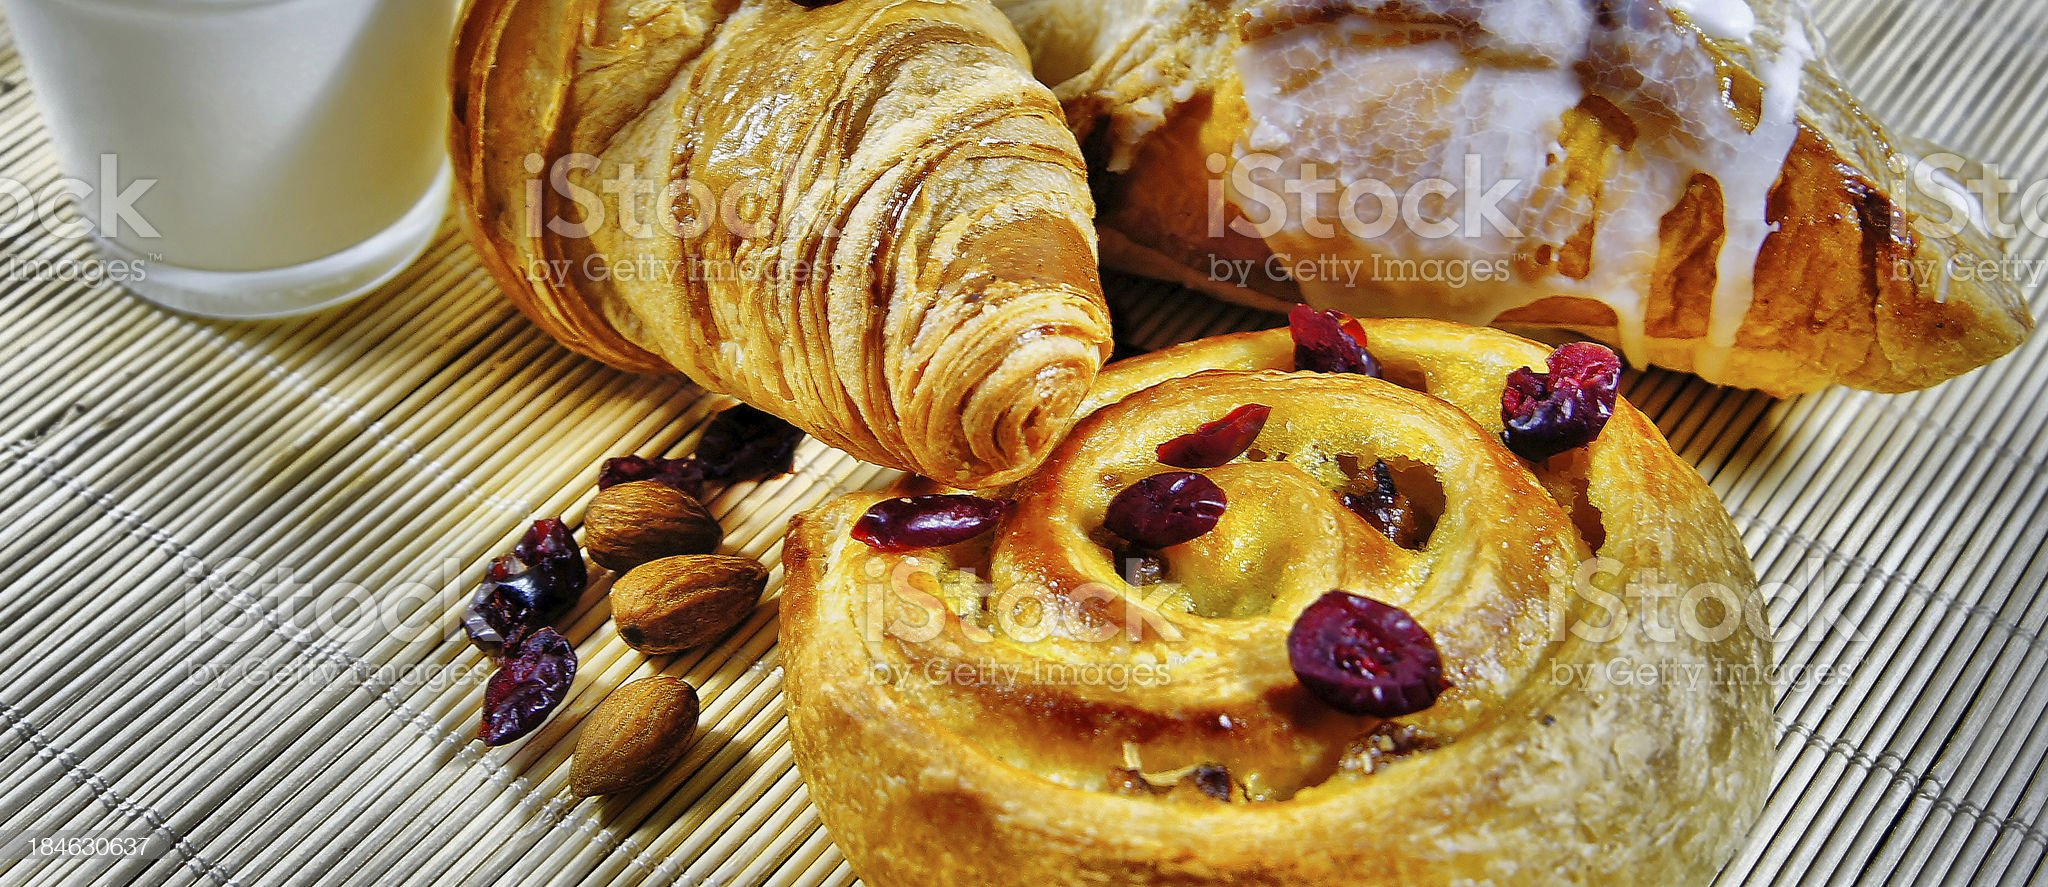 Continental, Croissant, Danish and glass of Milk royalty-free stock photo